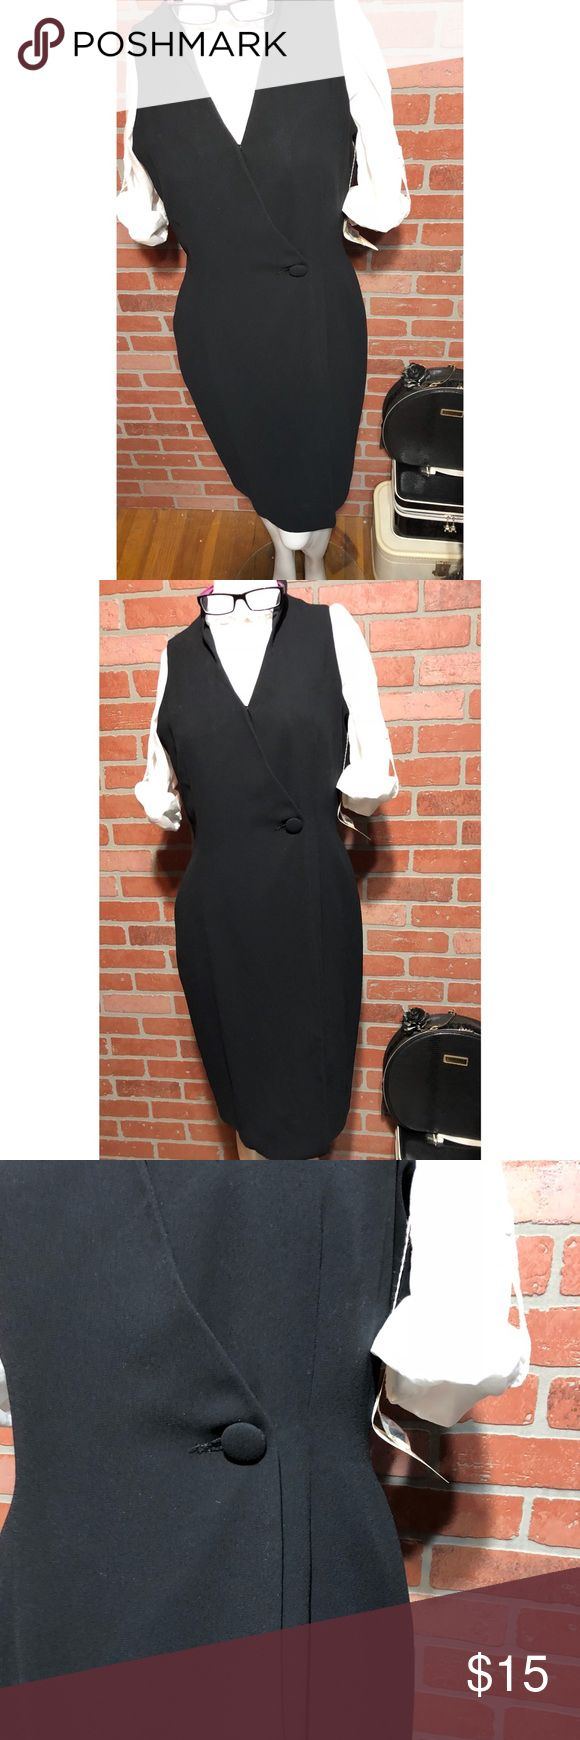 MariAnna NWT  stunning dress casual business So pretty  Sz 6  100% polyester  This dress has been designed with an emphasis on quality fabric prints and superior fit wear in the spirit of re-defined ease and elegance. mariAnna Dresses Midi